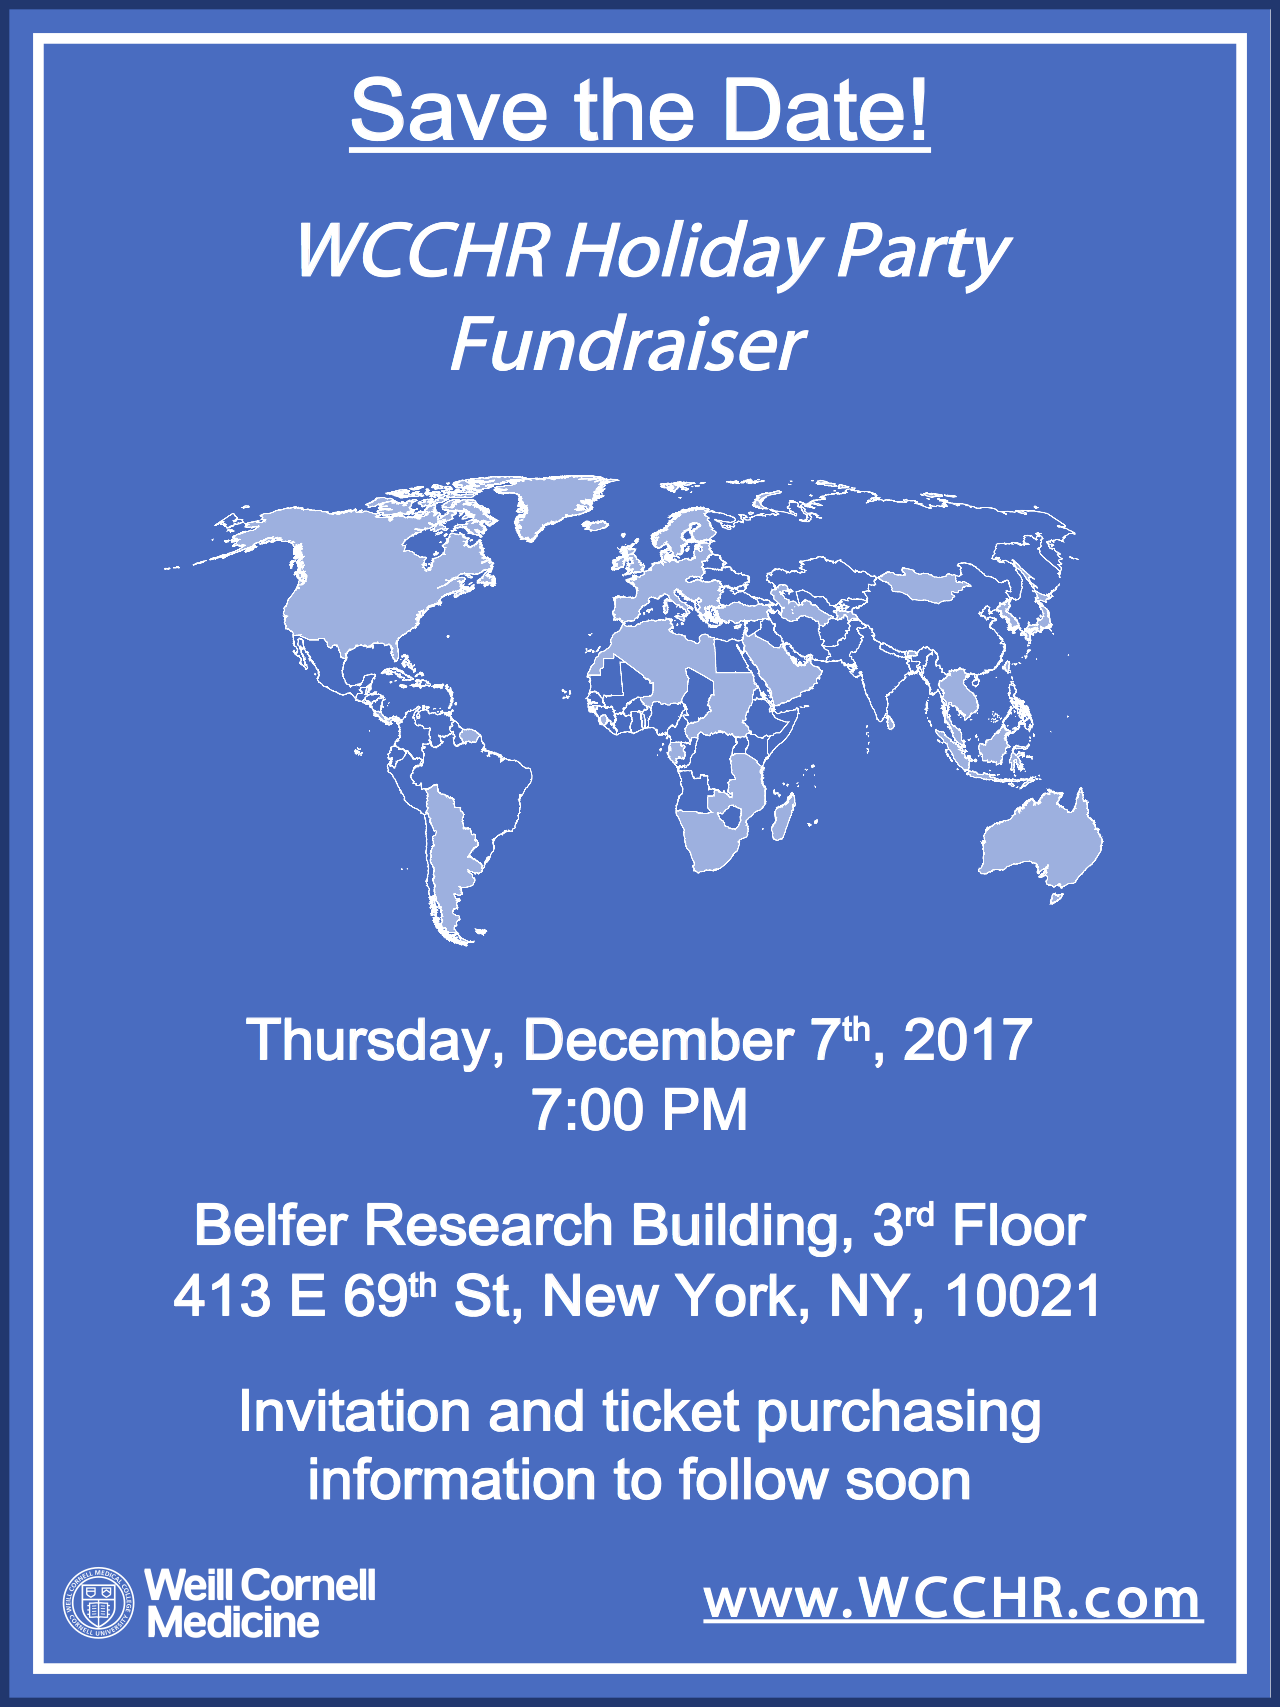 WCCHR Holiday Party December 7th 2017